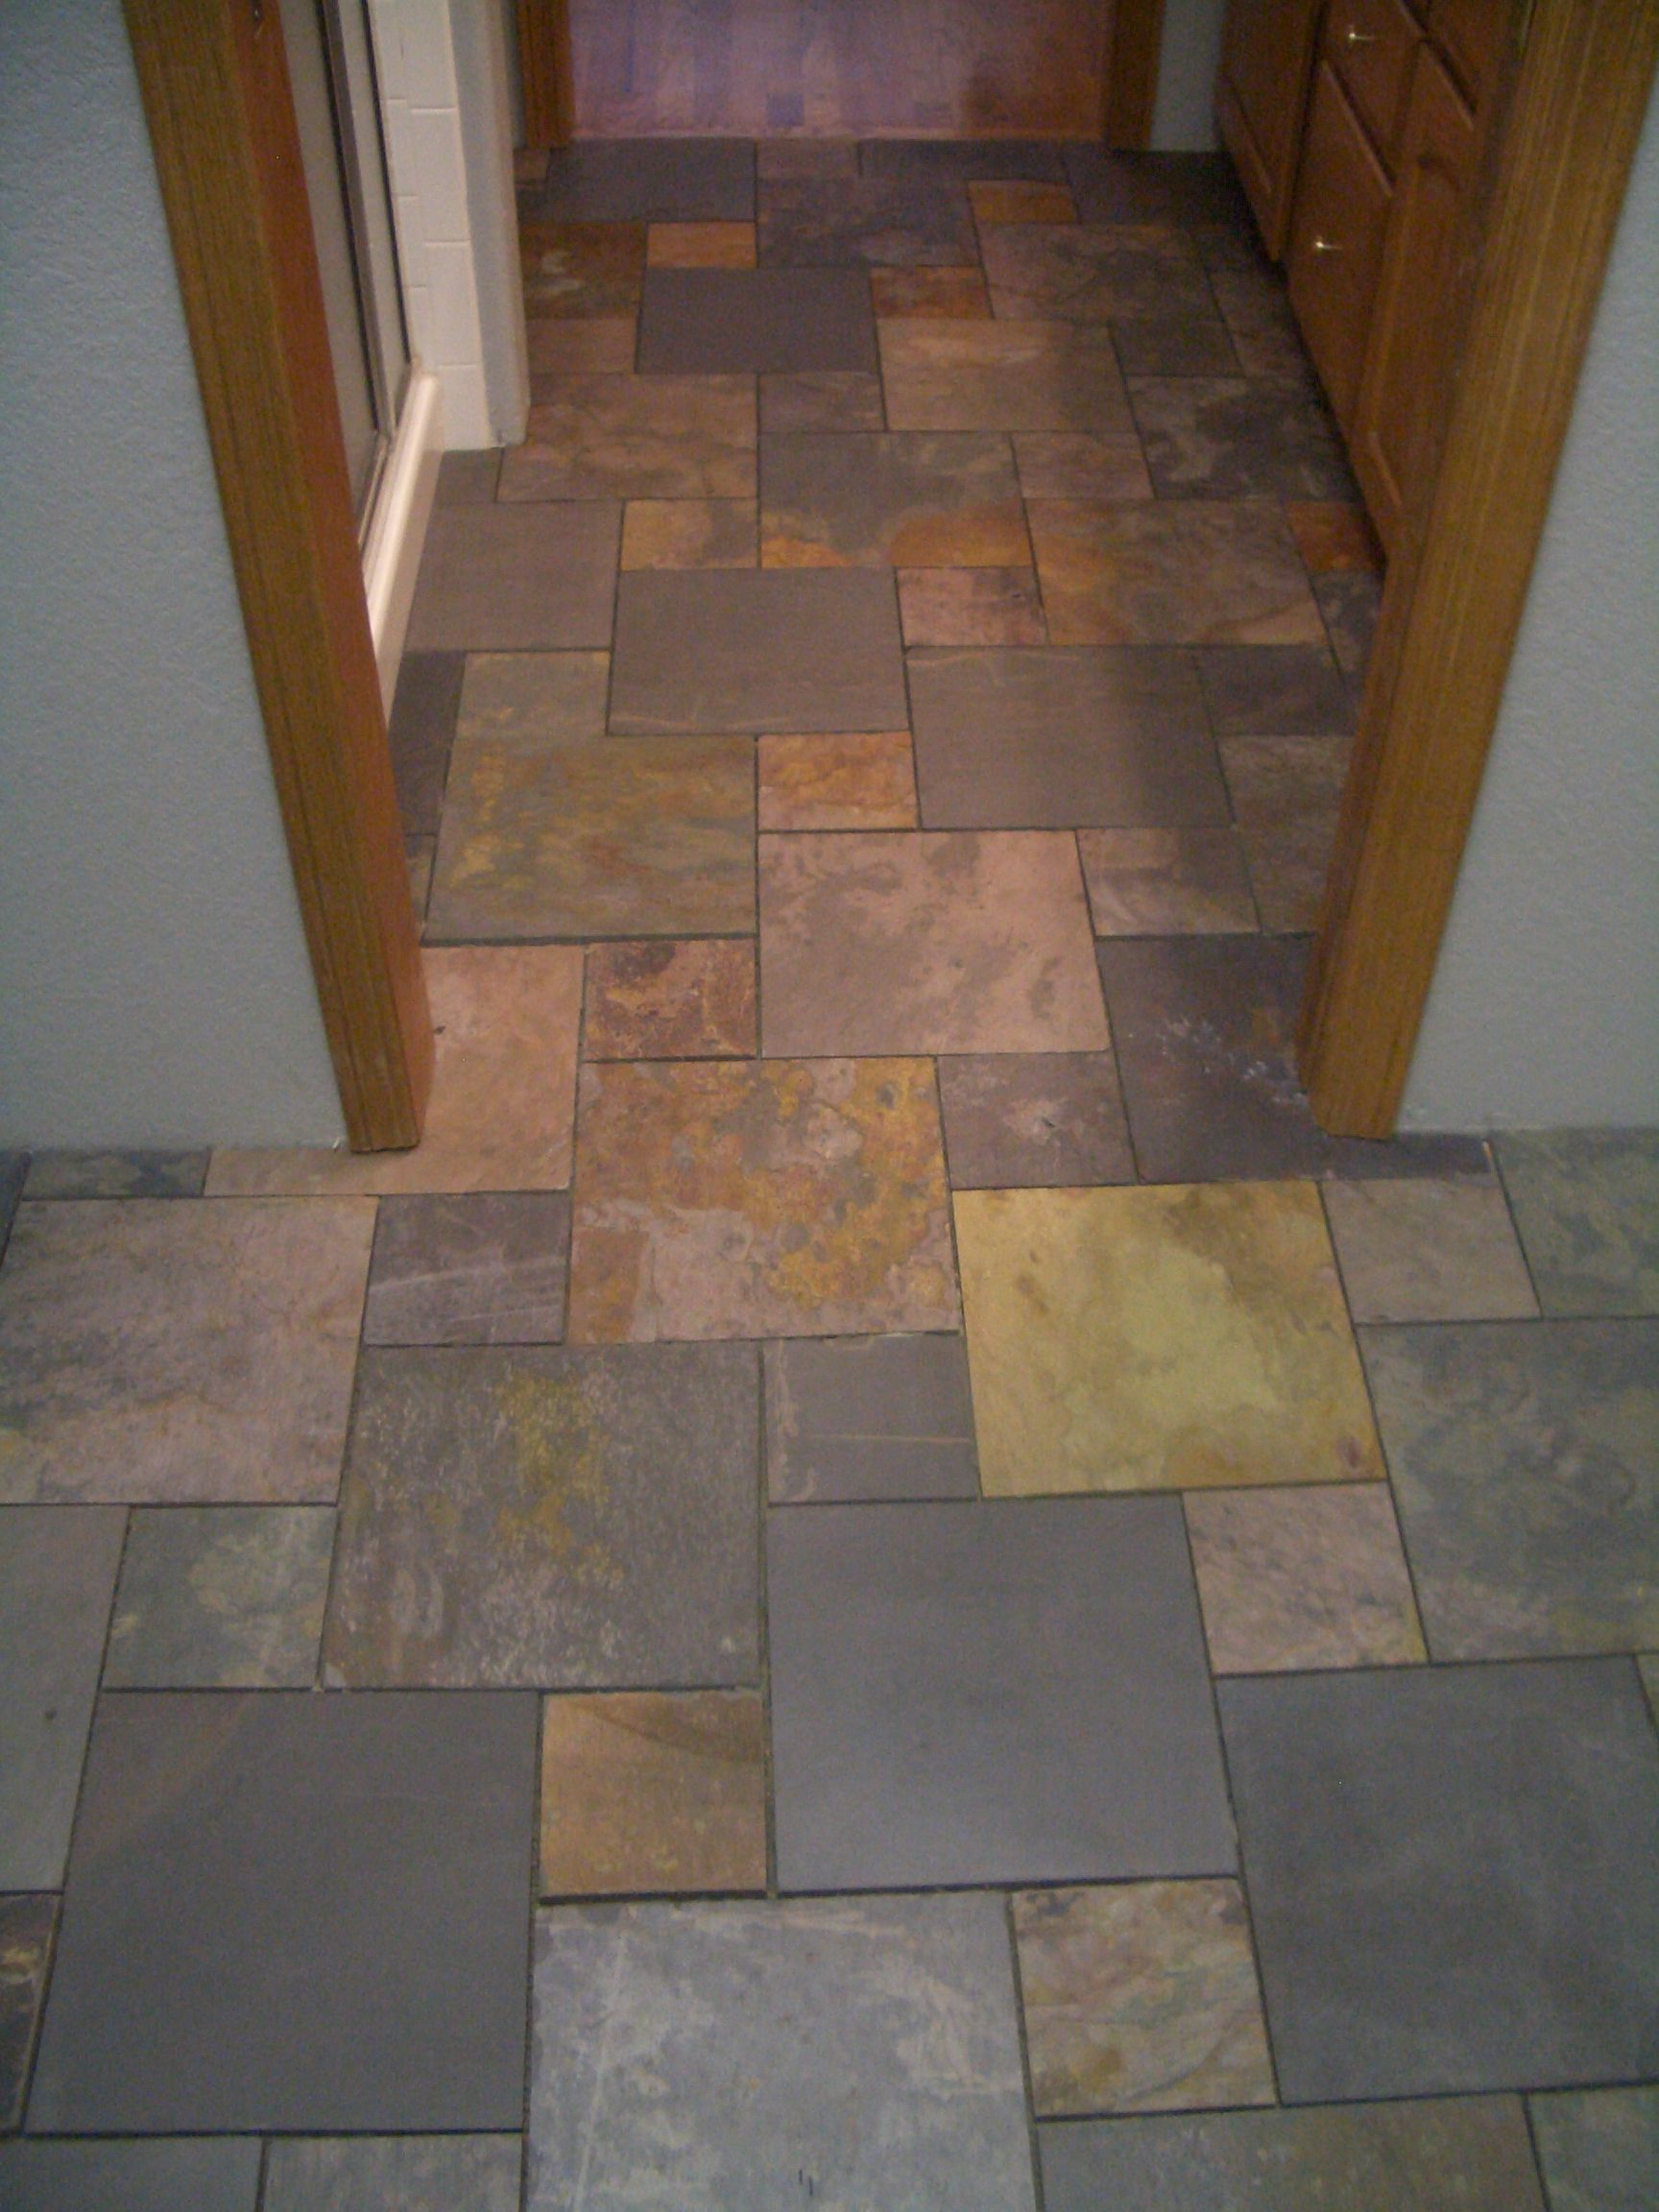 Bathroom floor tile ideas recently finished a bathroom laundry dont forget to get this slate bathroom floor tiles and view full page gallery as wellate pinwheel bathroom floor f dailygadgetfo Gallery